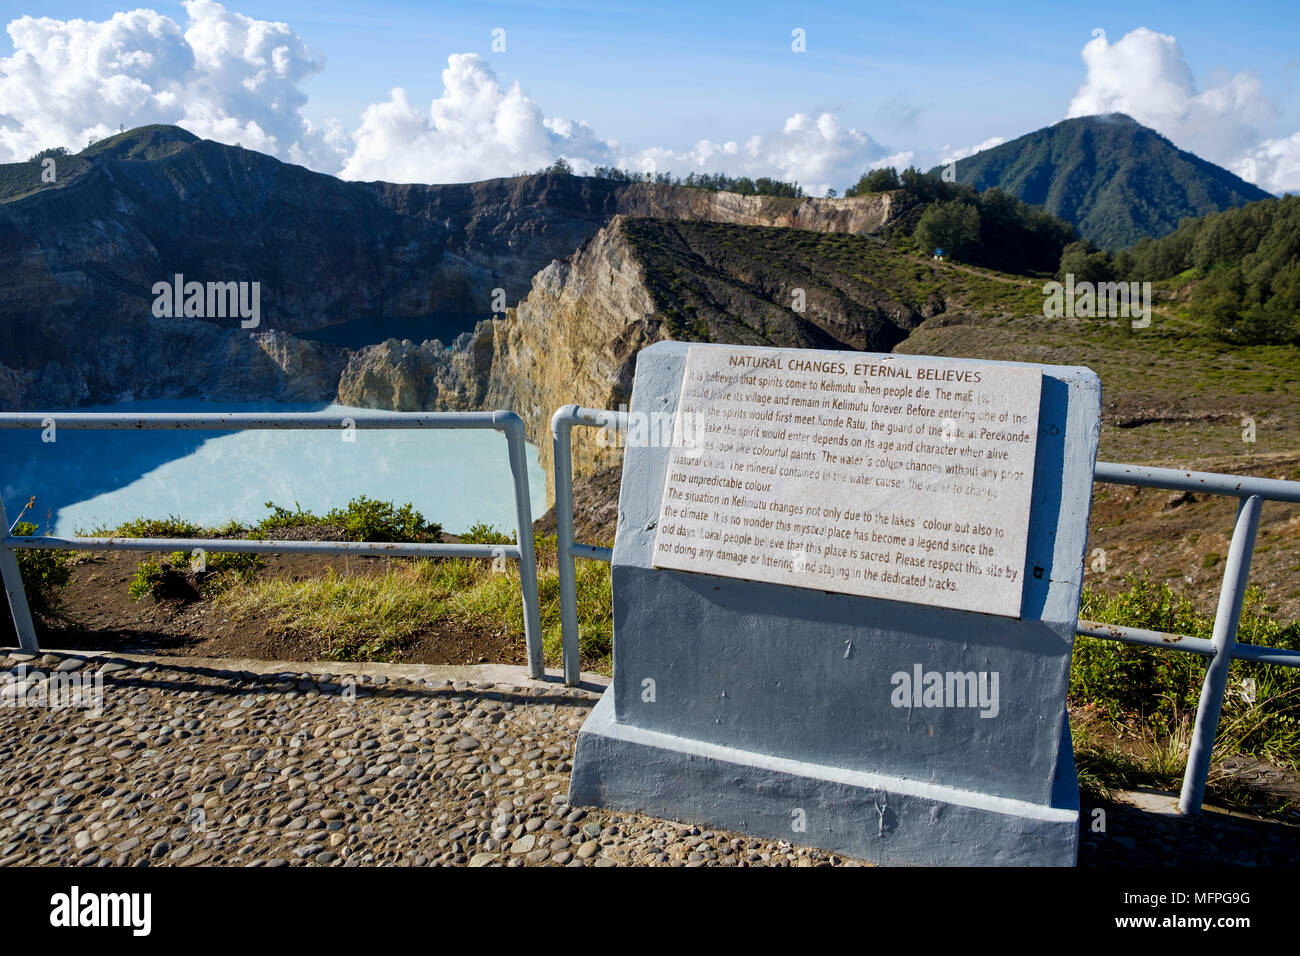 Plaque at viewpoint overlooking the eastern crater lakes at Mount Kelimutu, Ende Regency, Flores Island, Indonesia. - Stock Image